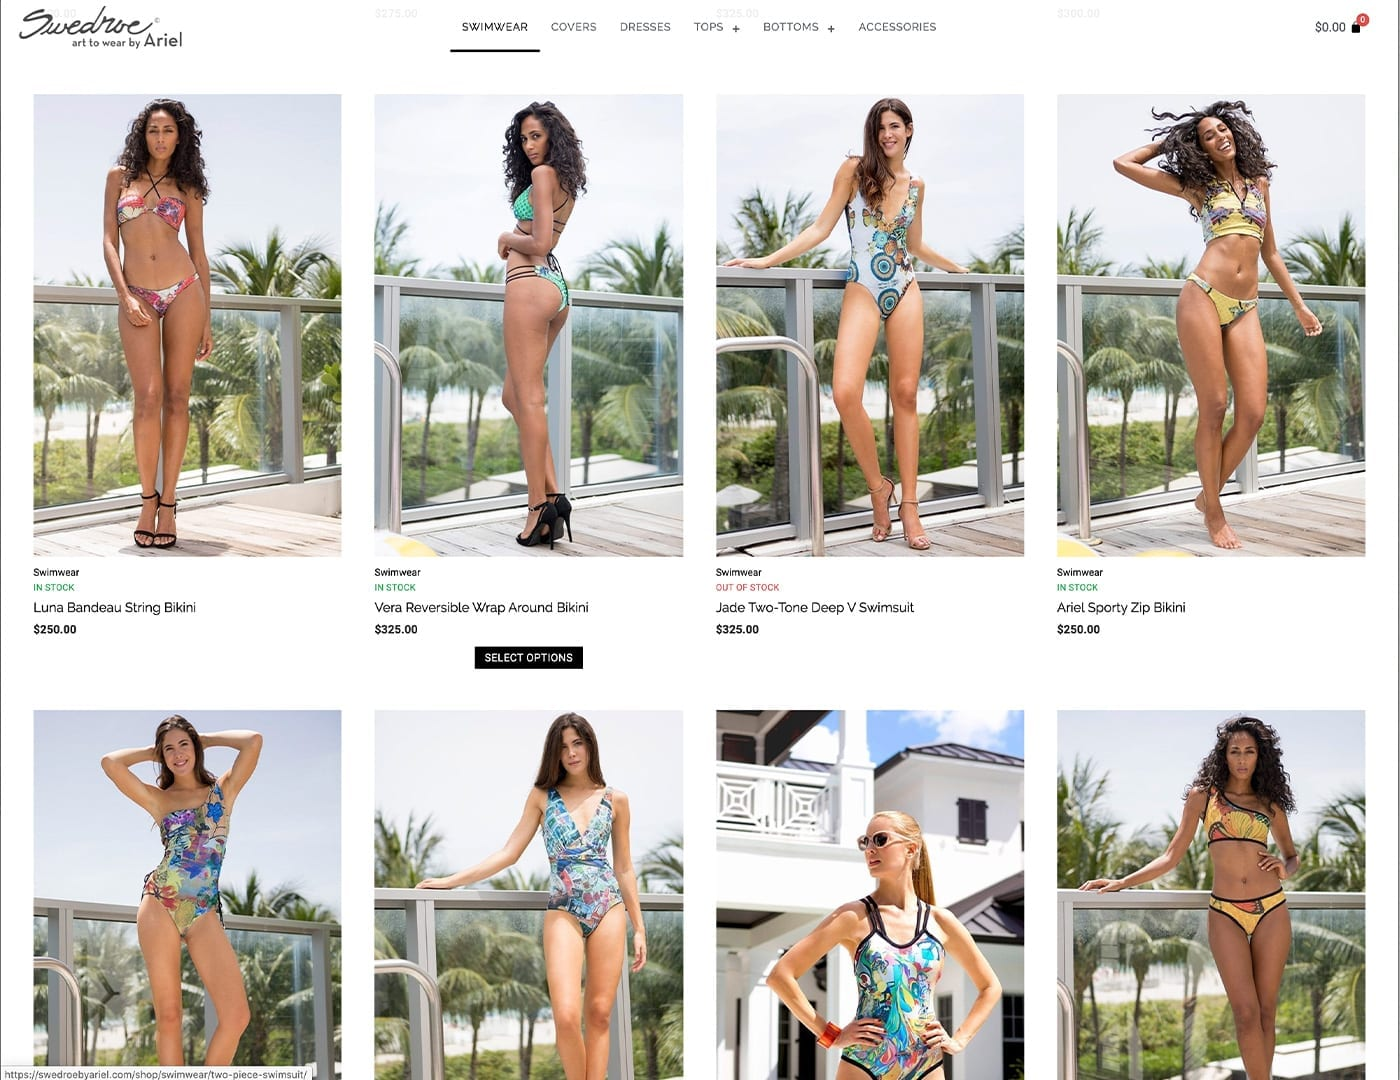 Store Product Pages – swedroebyariel.com - Online Store built with bizProWeb - Website Design by sliStudios | Miami